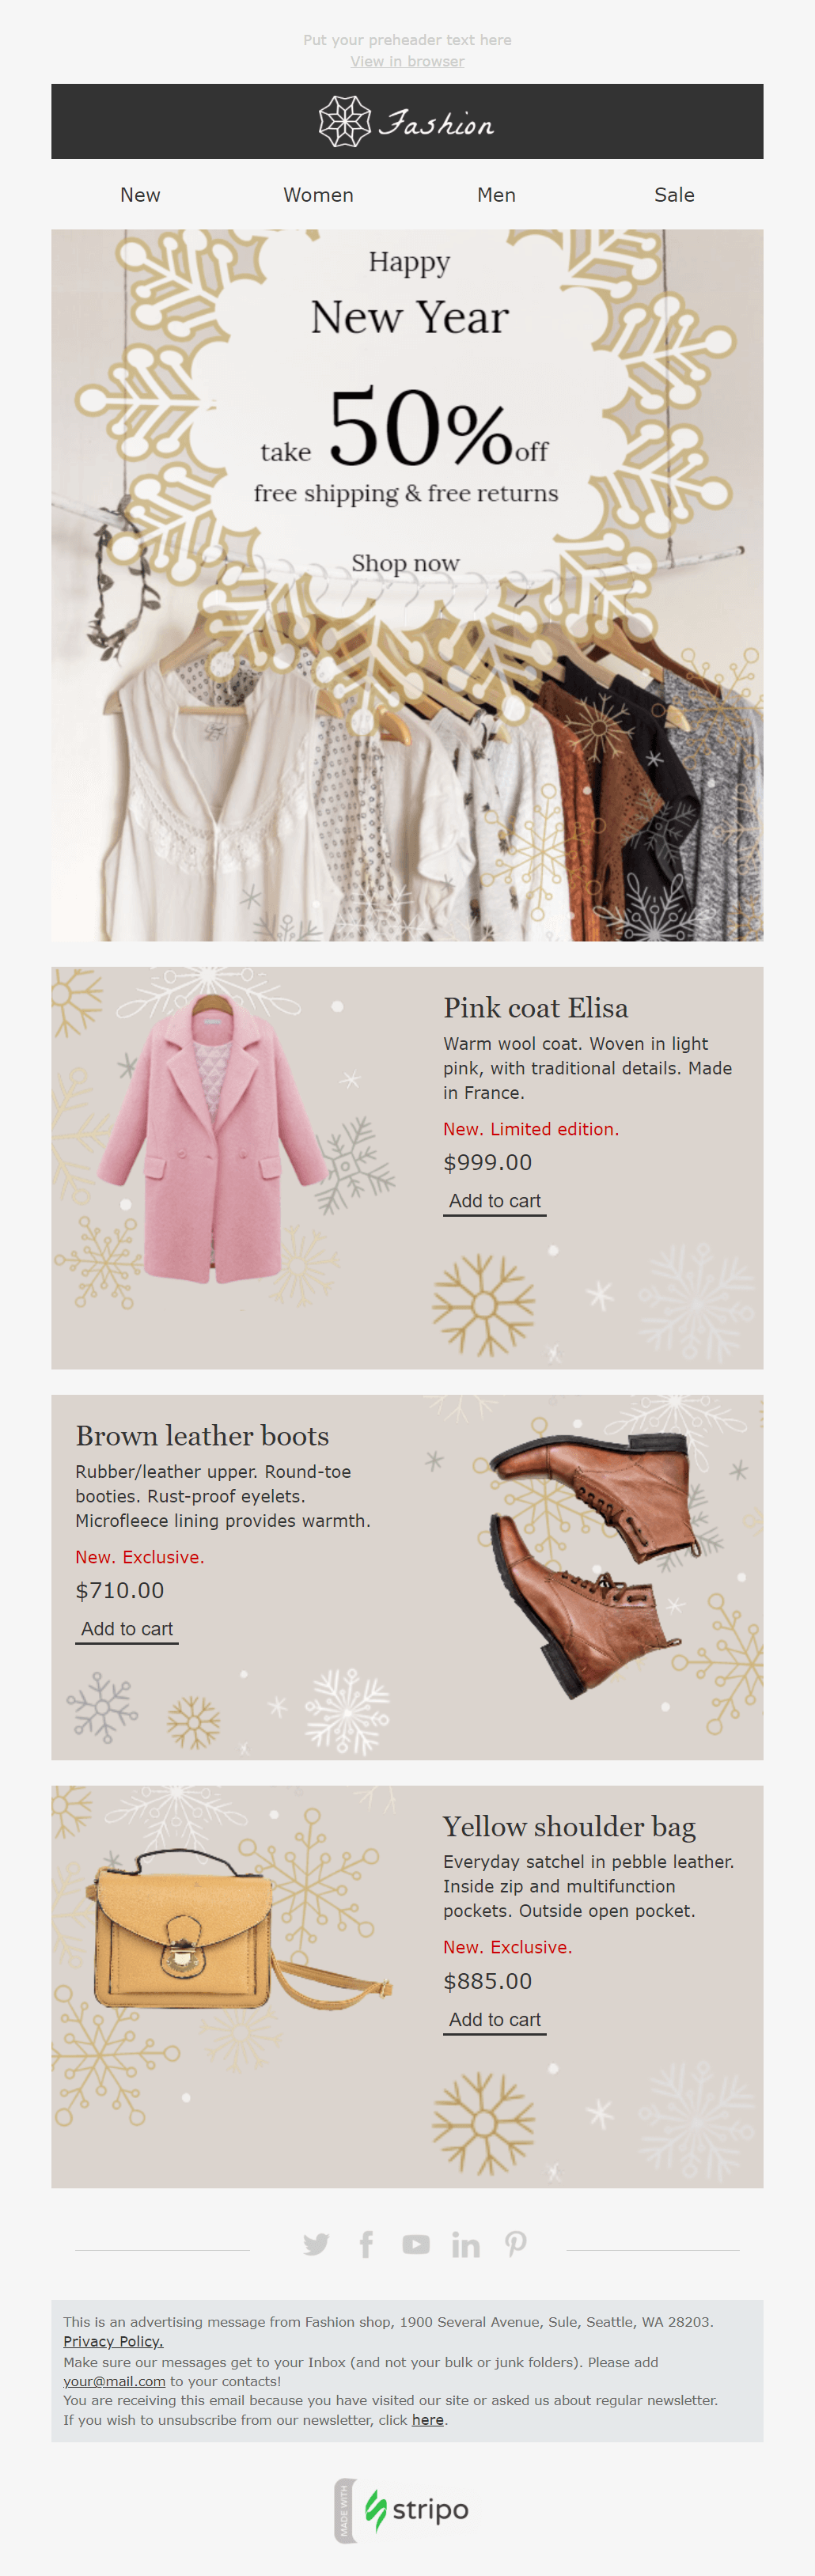 new year responsive email design